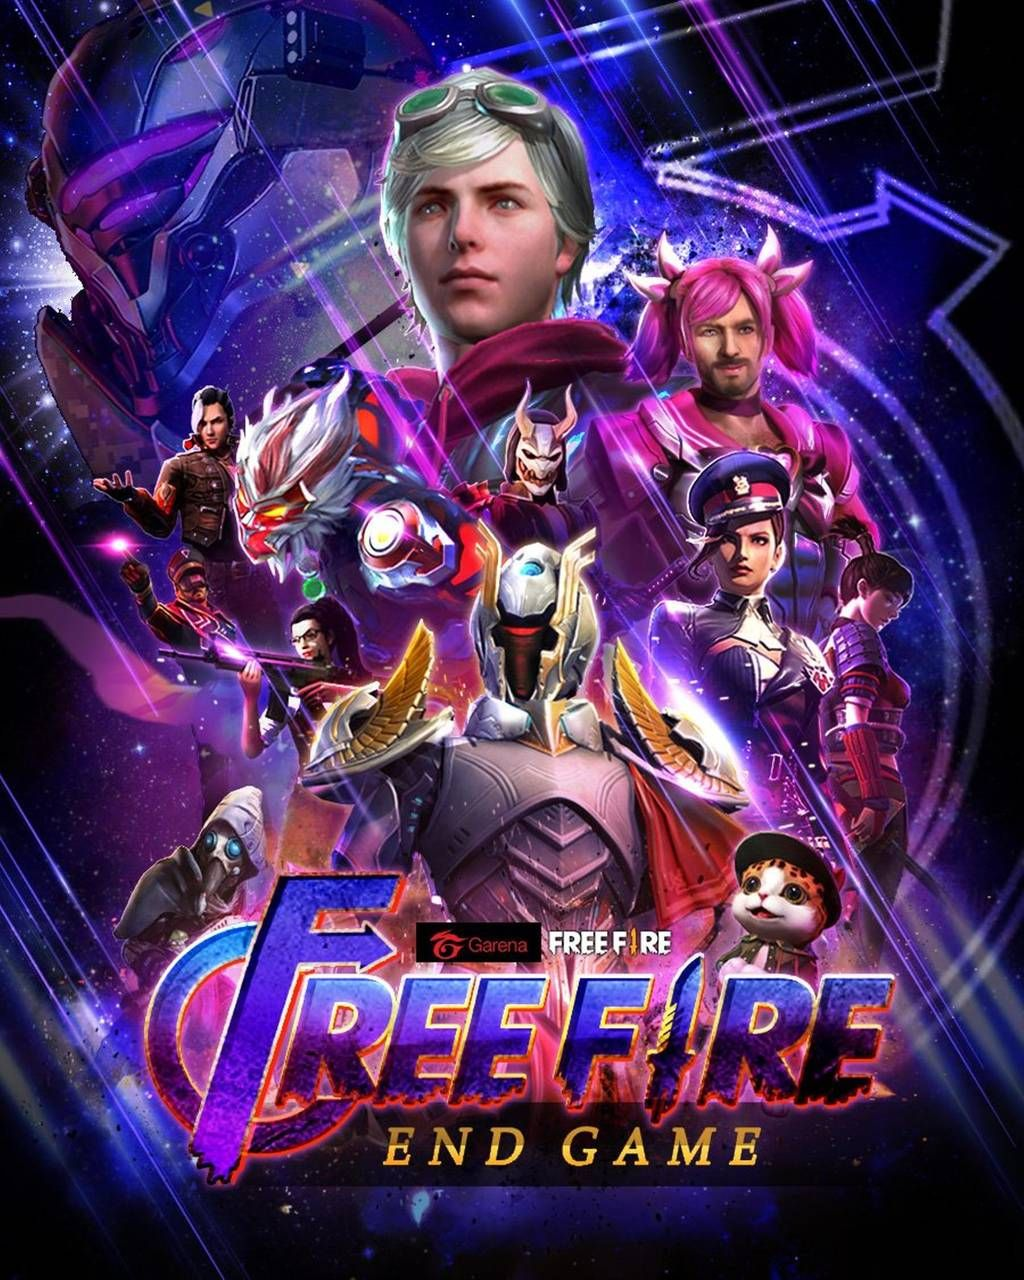 Download Free Fire End Game Wallpaper By Edder211510879 7d Free On Zedge Now Browse Mi Gaming Wallpapers Download Cute Wallpapers Wallpaper Free Download